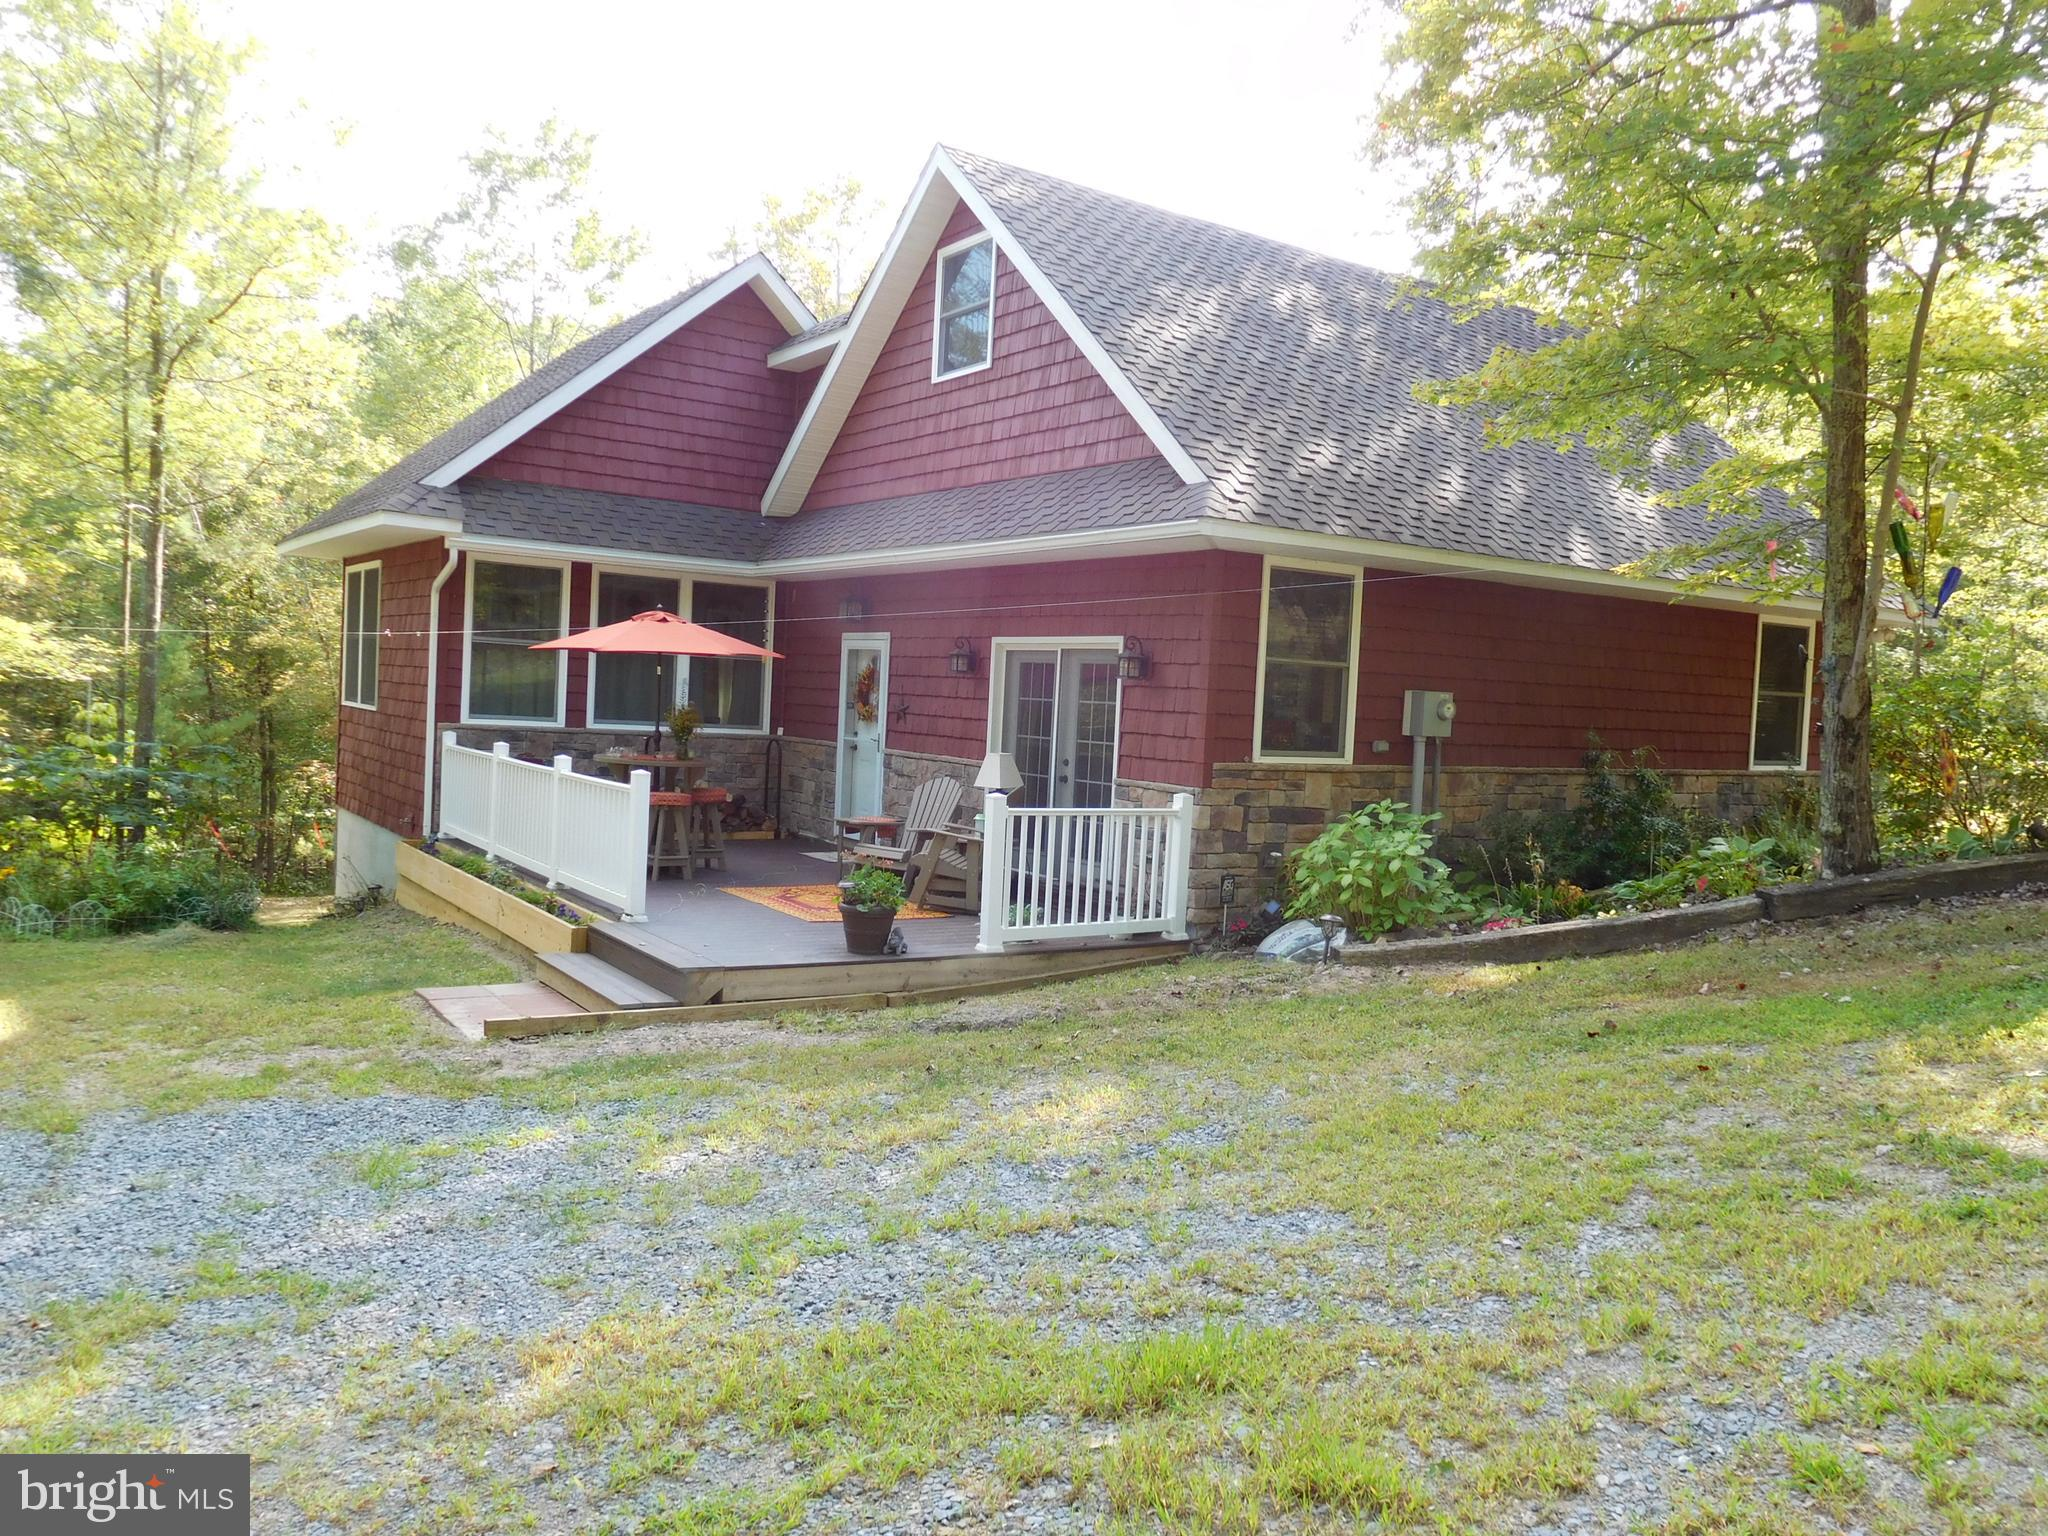 216 WOOD CHUCK HOLLOW, AUGUSTA, WV 26704